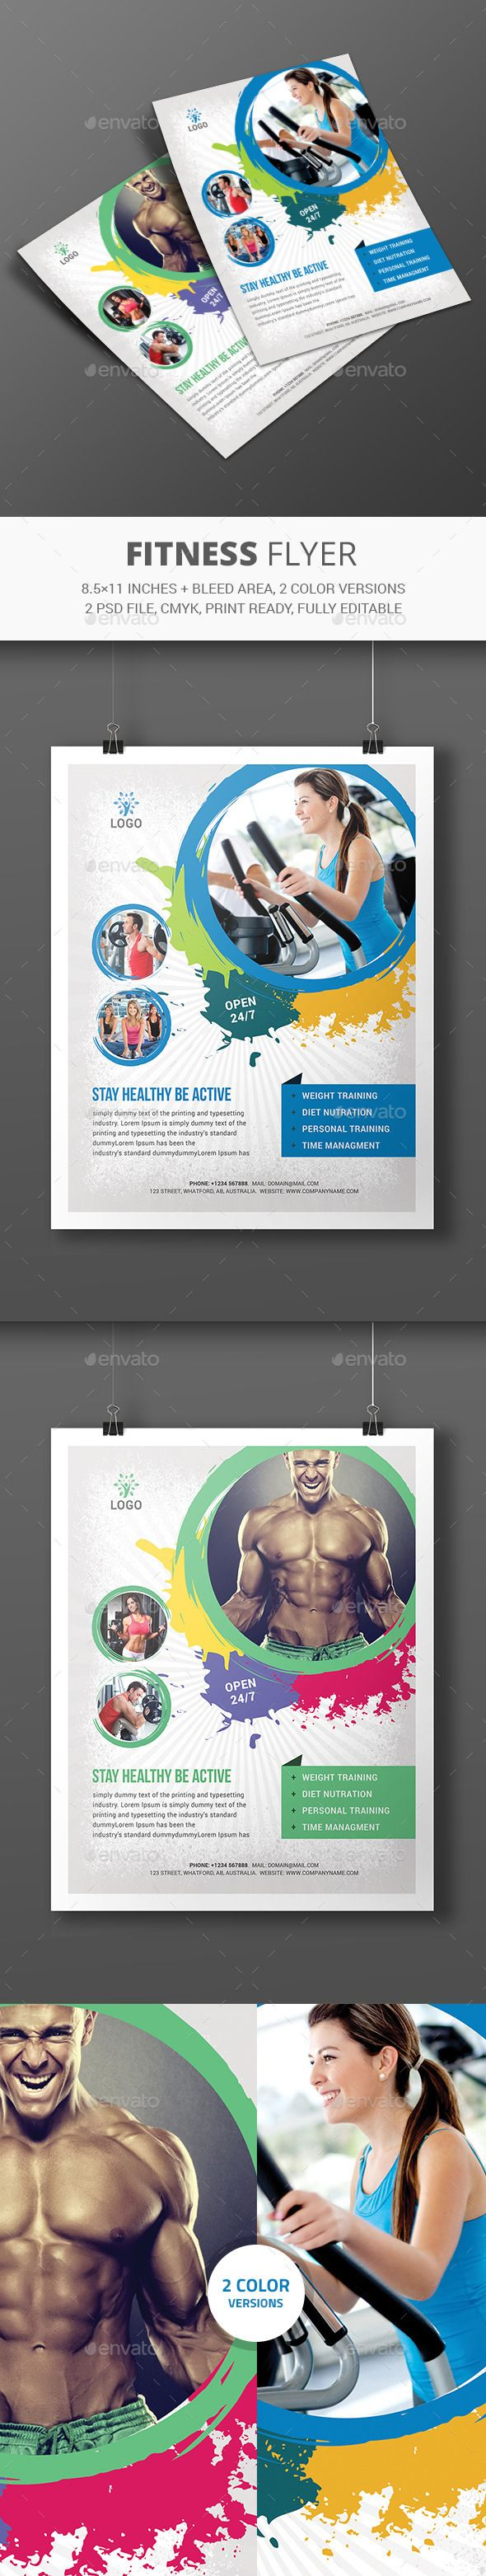 Fitness Flyer by themedevisers This Fitness Flyer